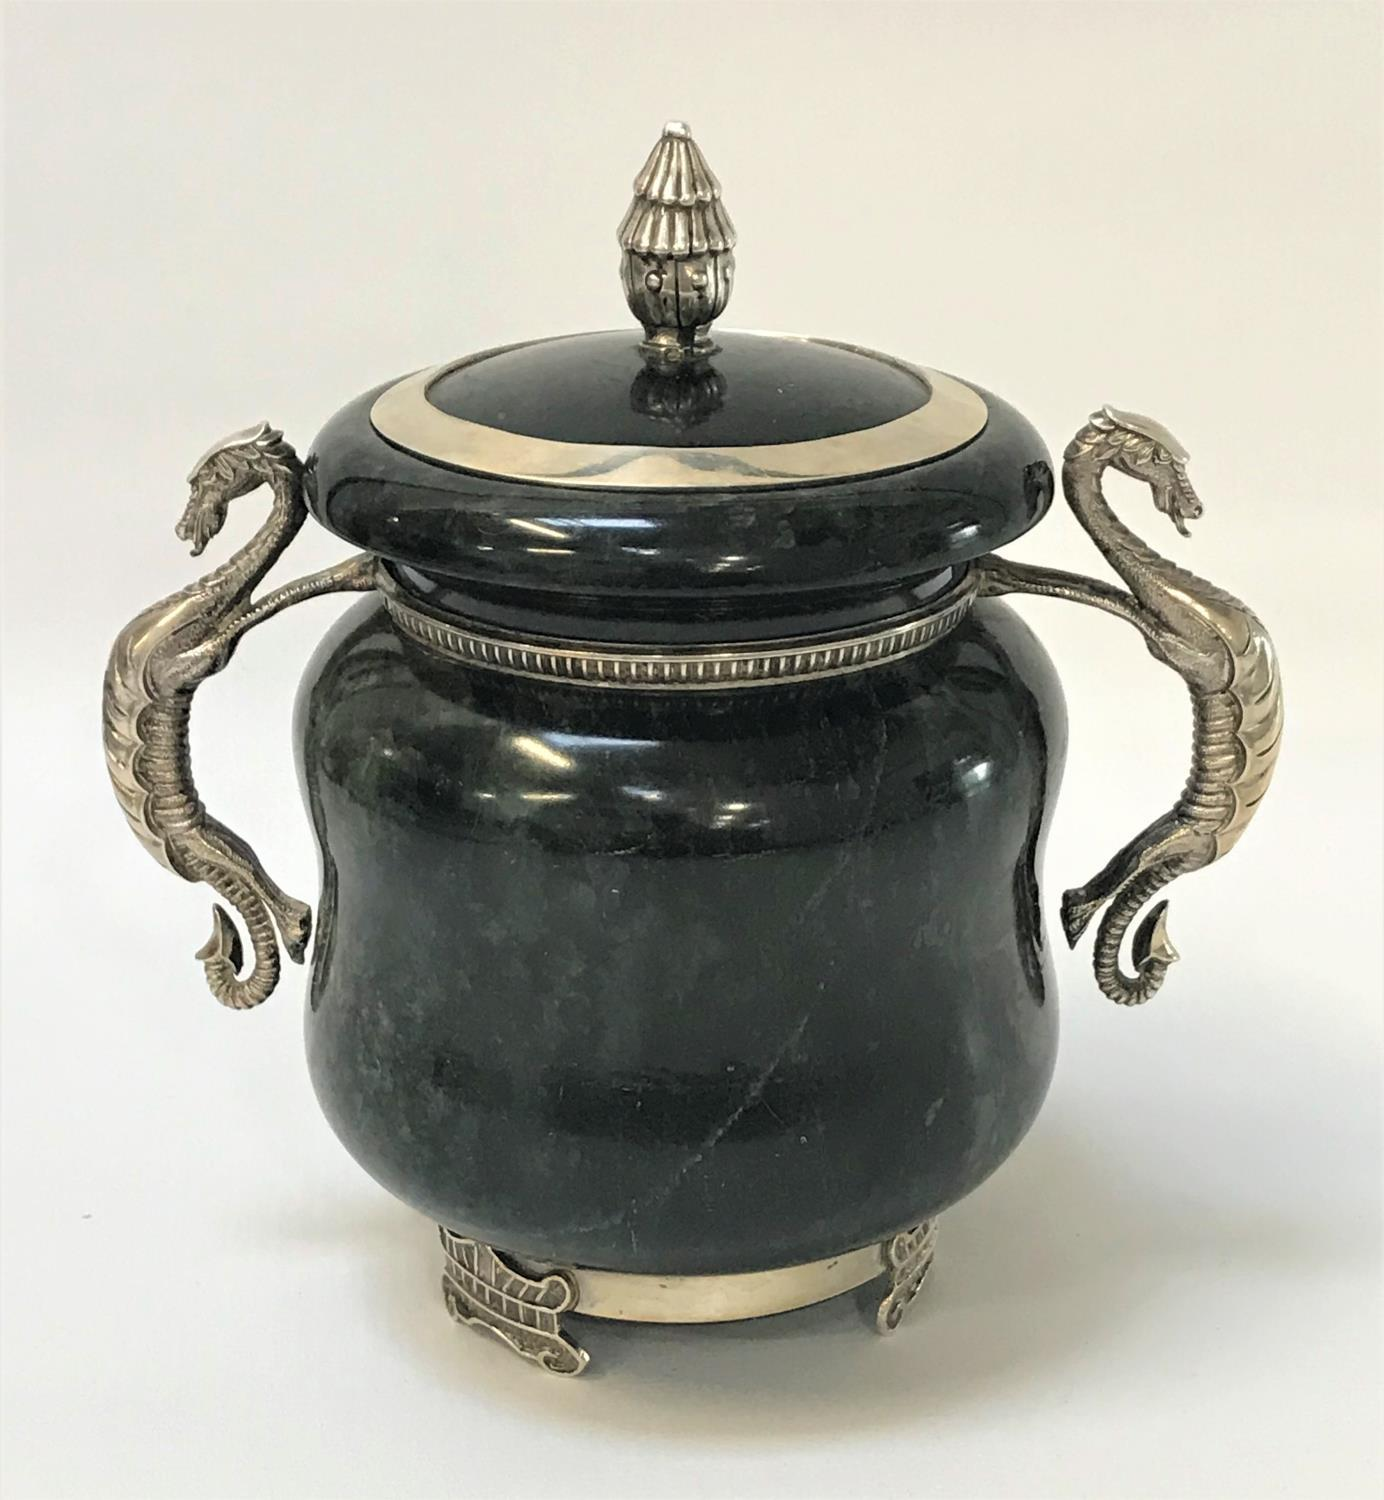 Lot 292 - NEPHRITE JAR AND COVER of squat bulbous form, the lid with a silver finial and rim, the jar with a